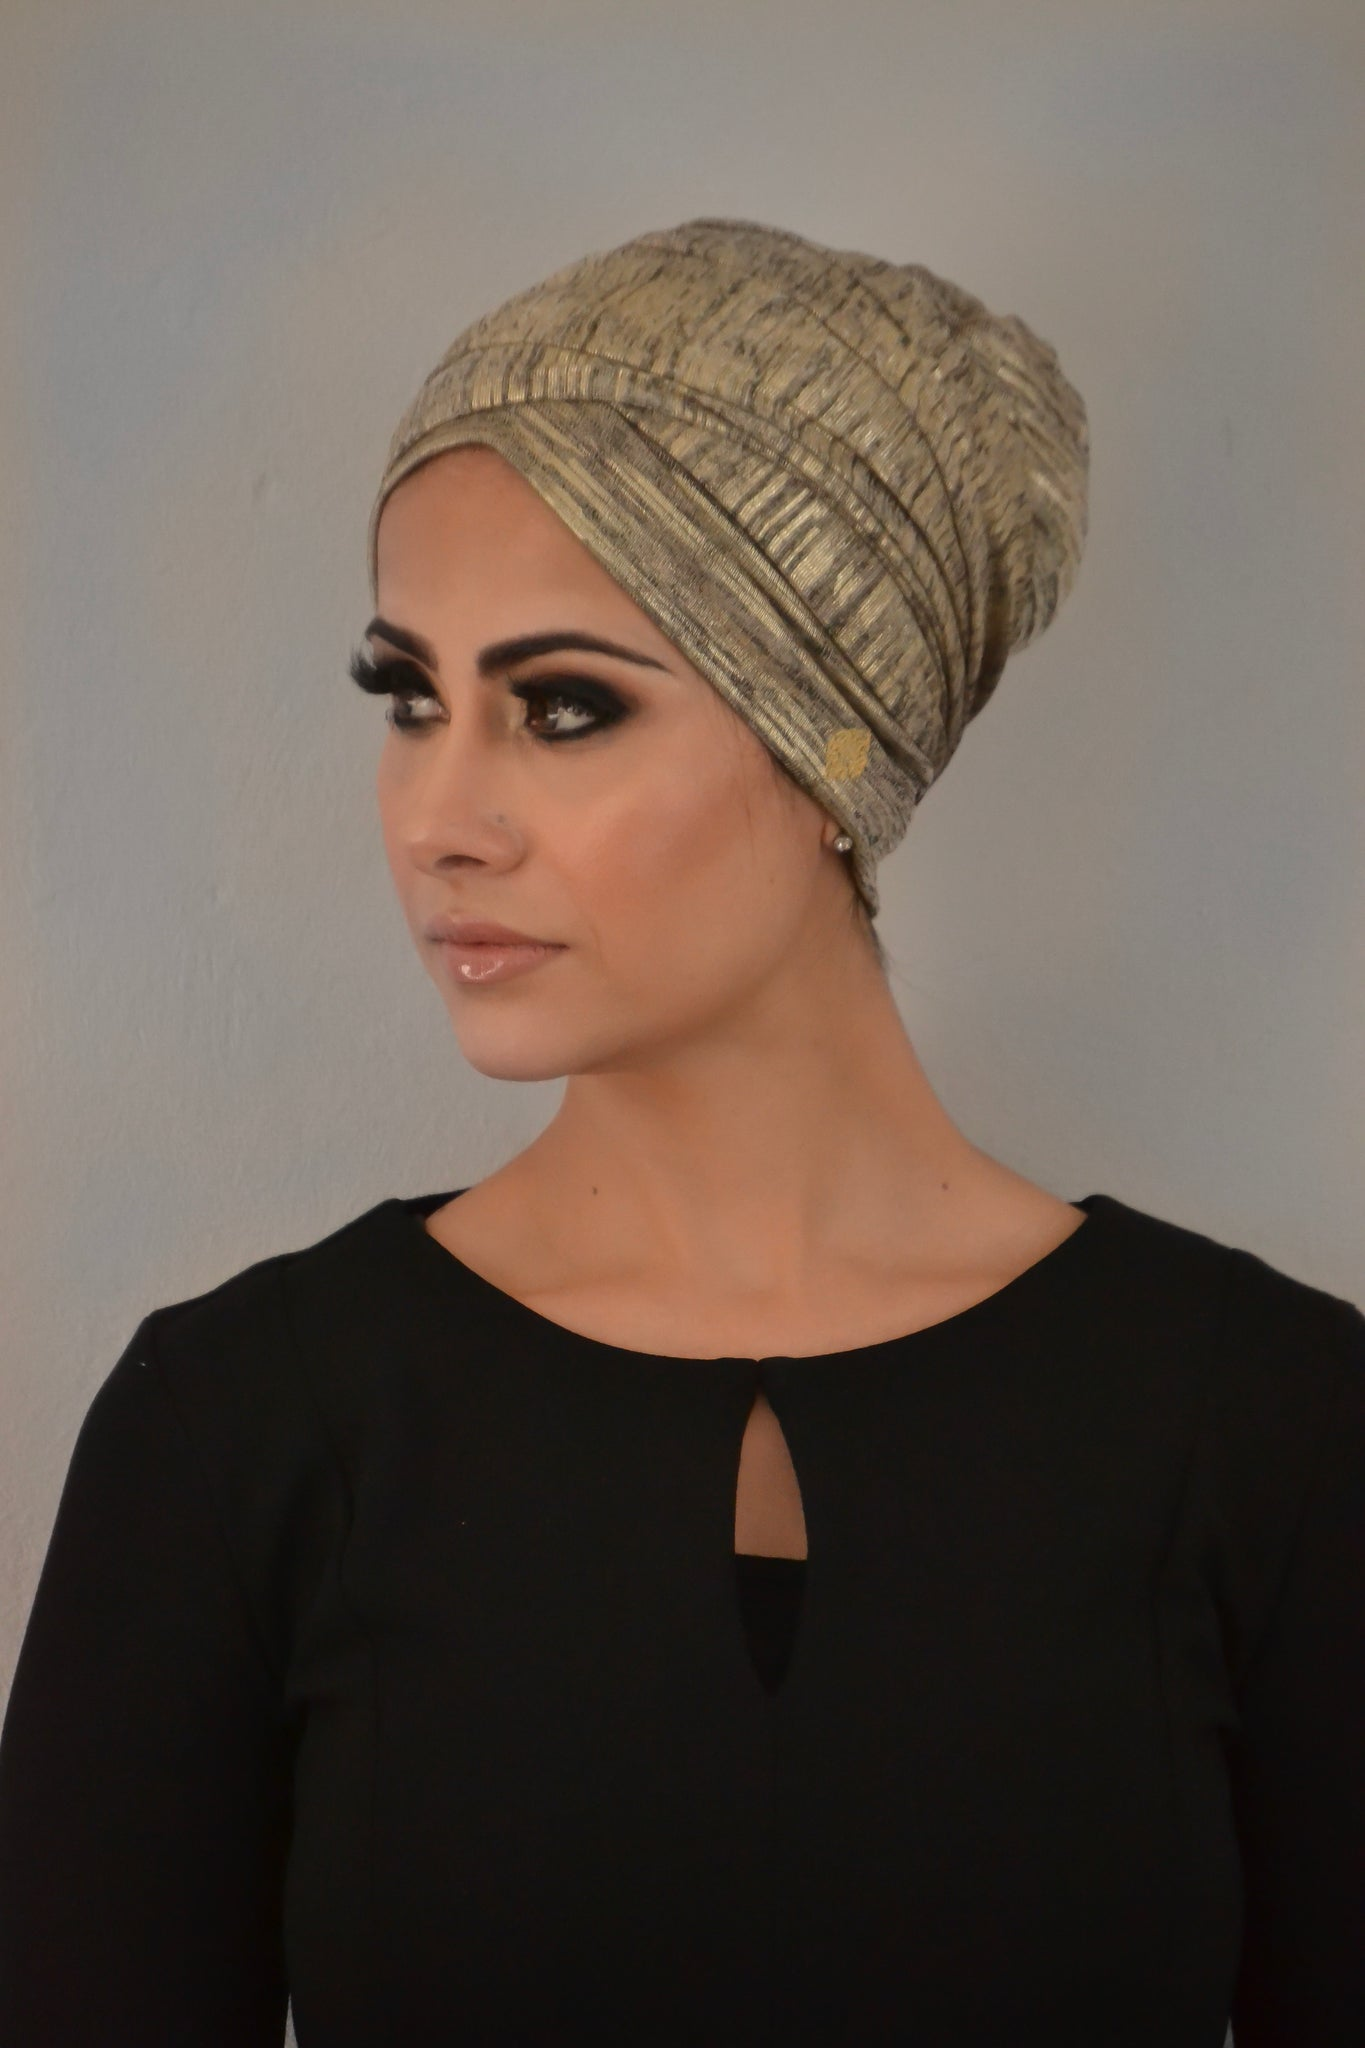 Jersey lamé metallic turban hijab with ties